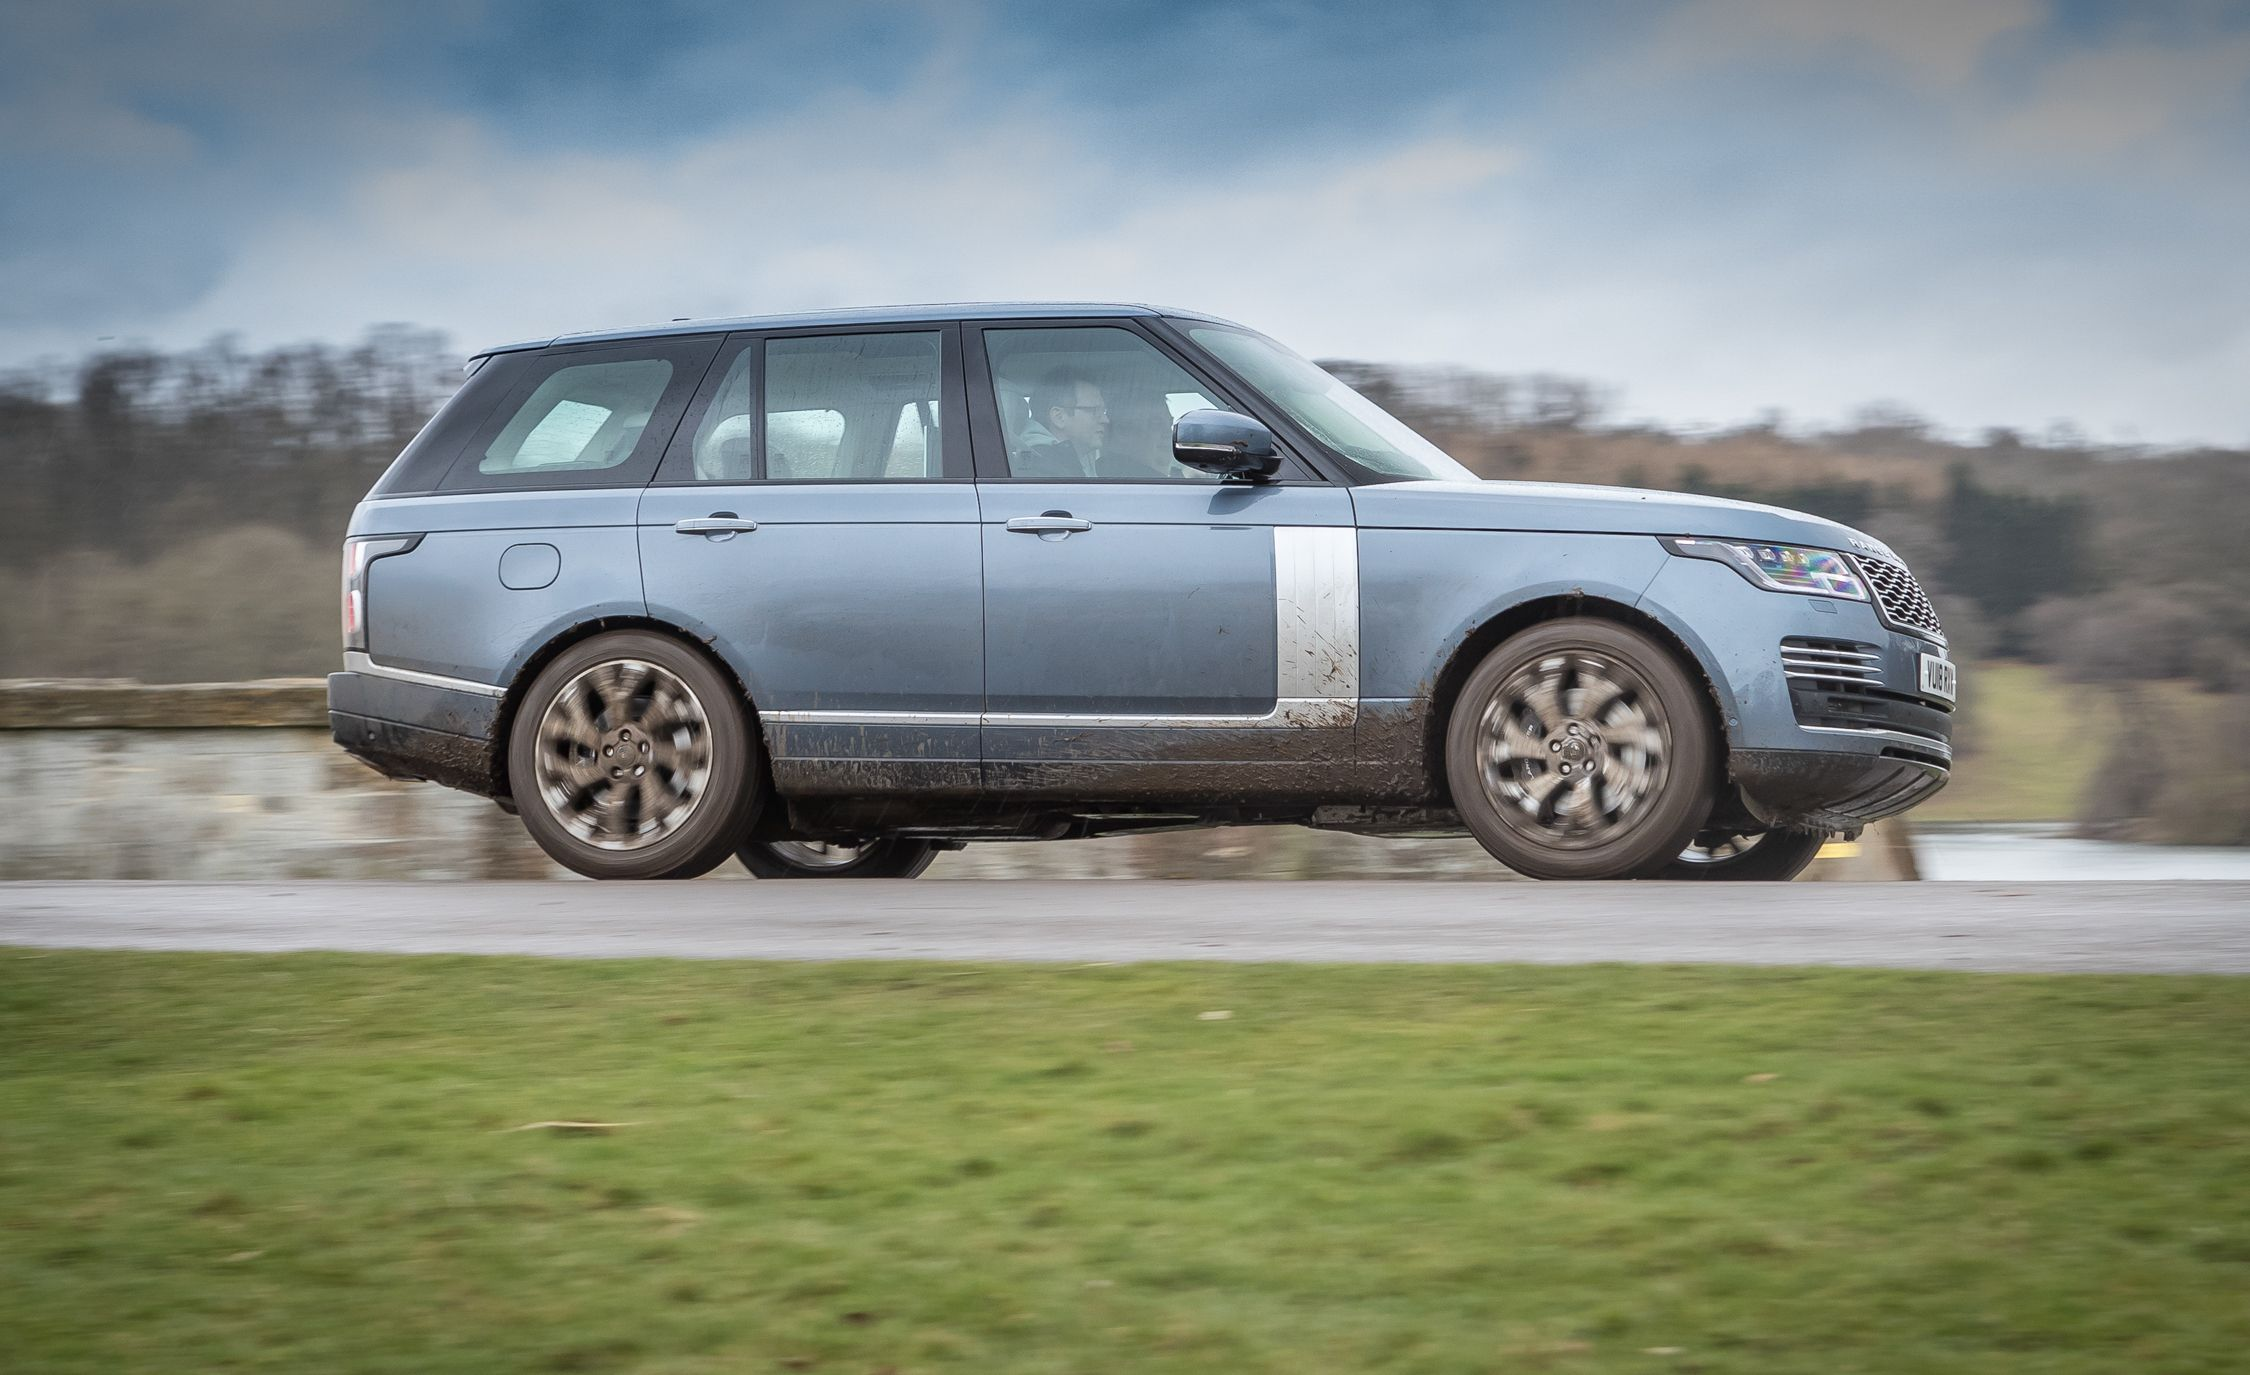 2007 range rover lr3 owners manual